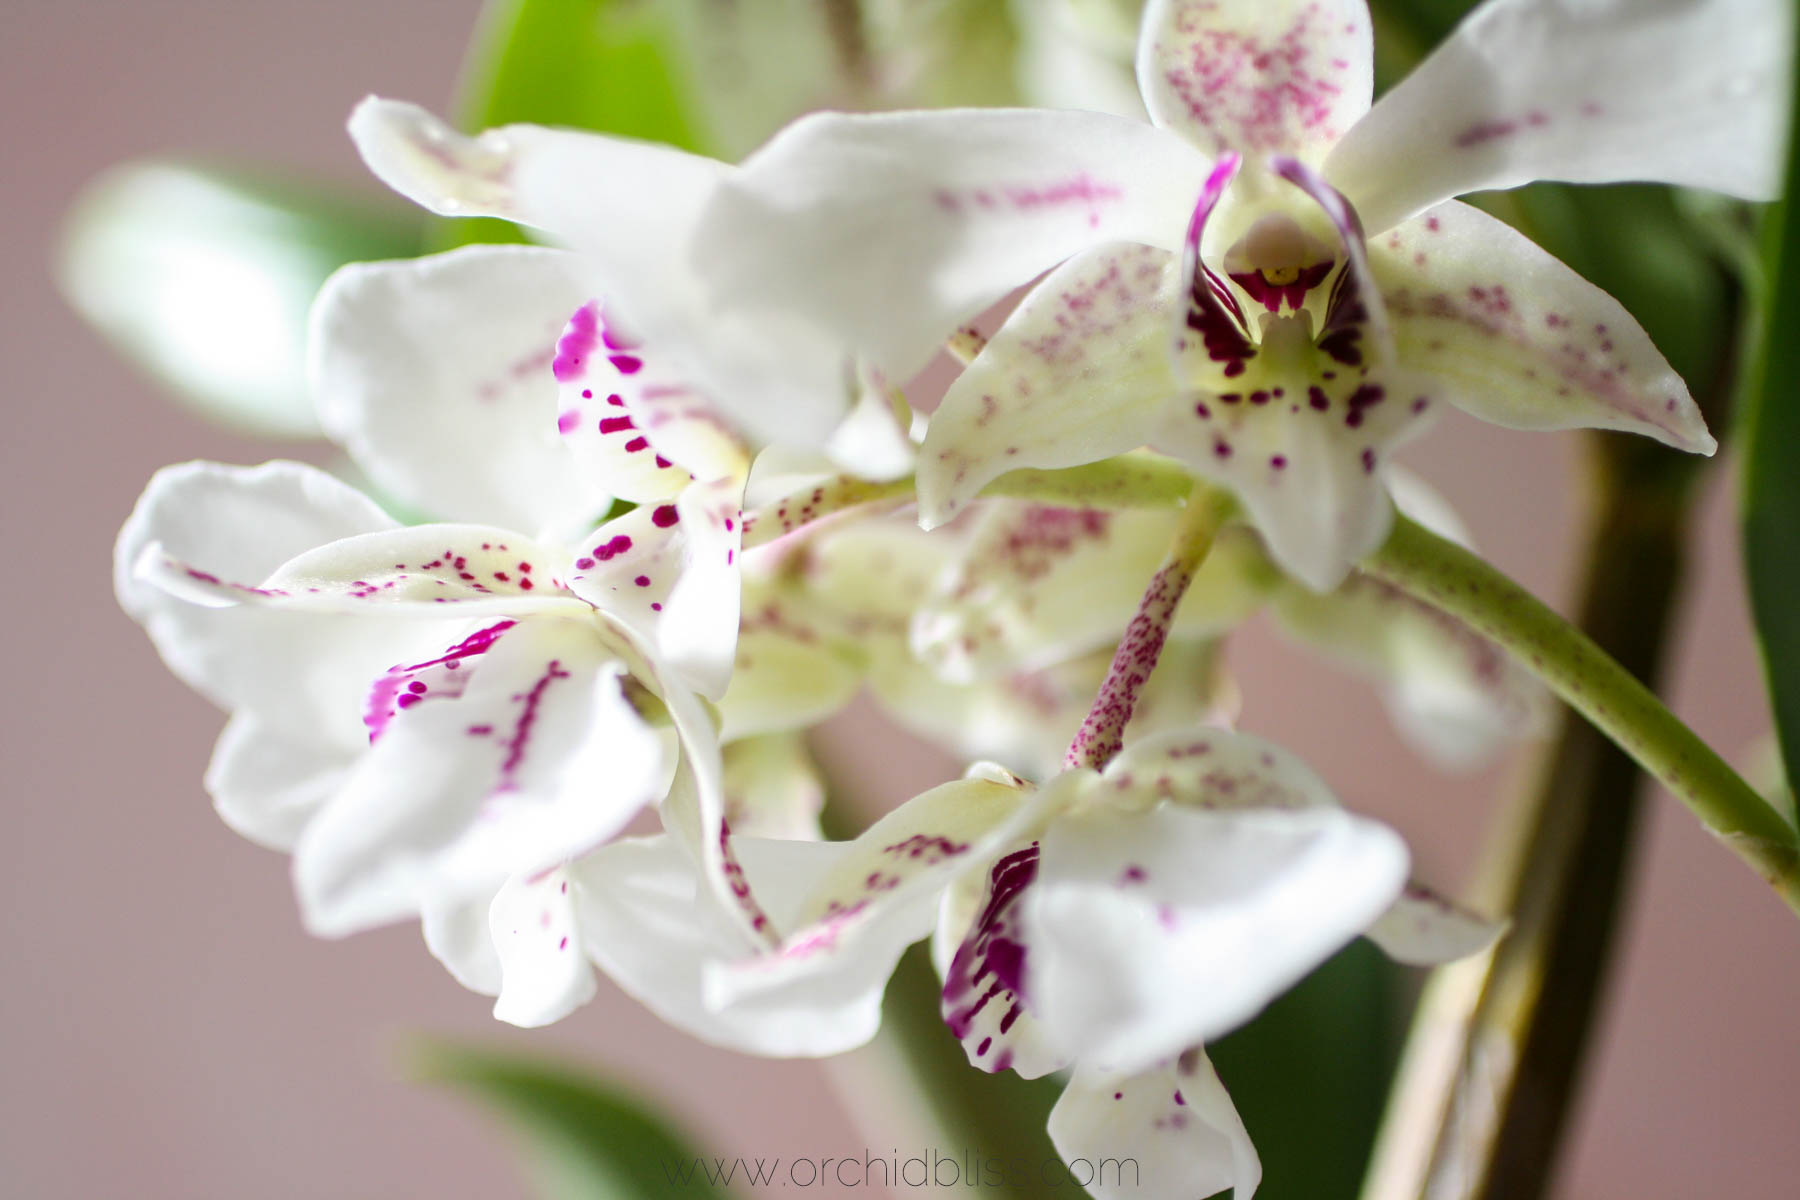 roy tokunaga orchid - spring orchid culture